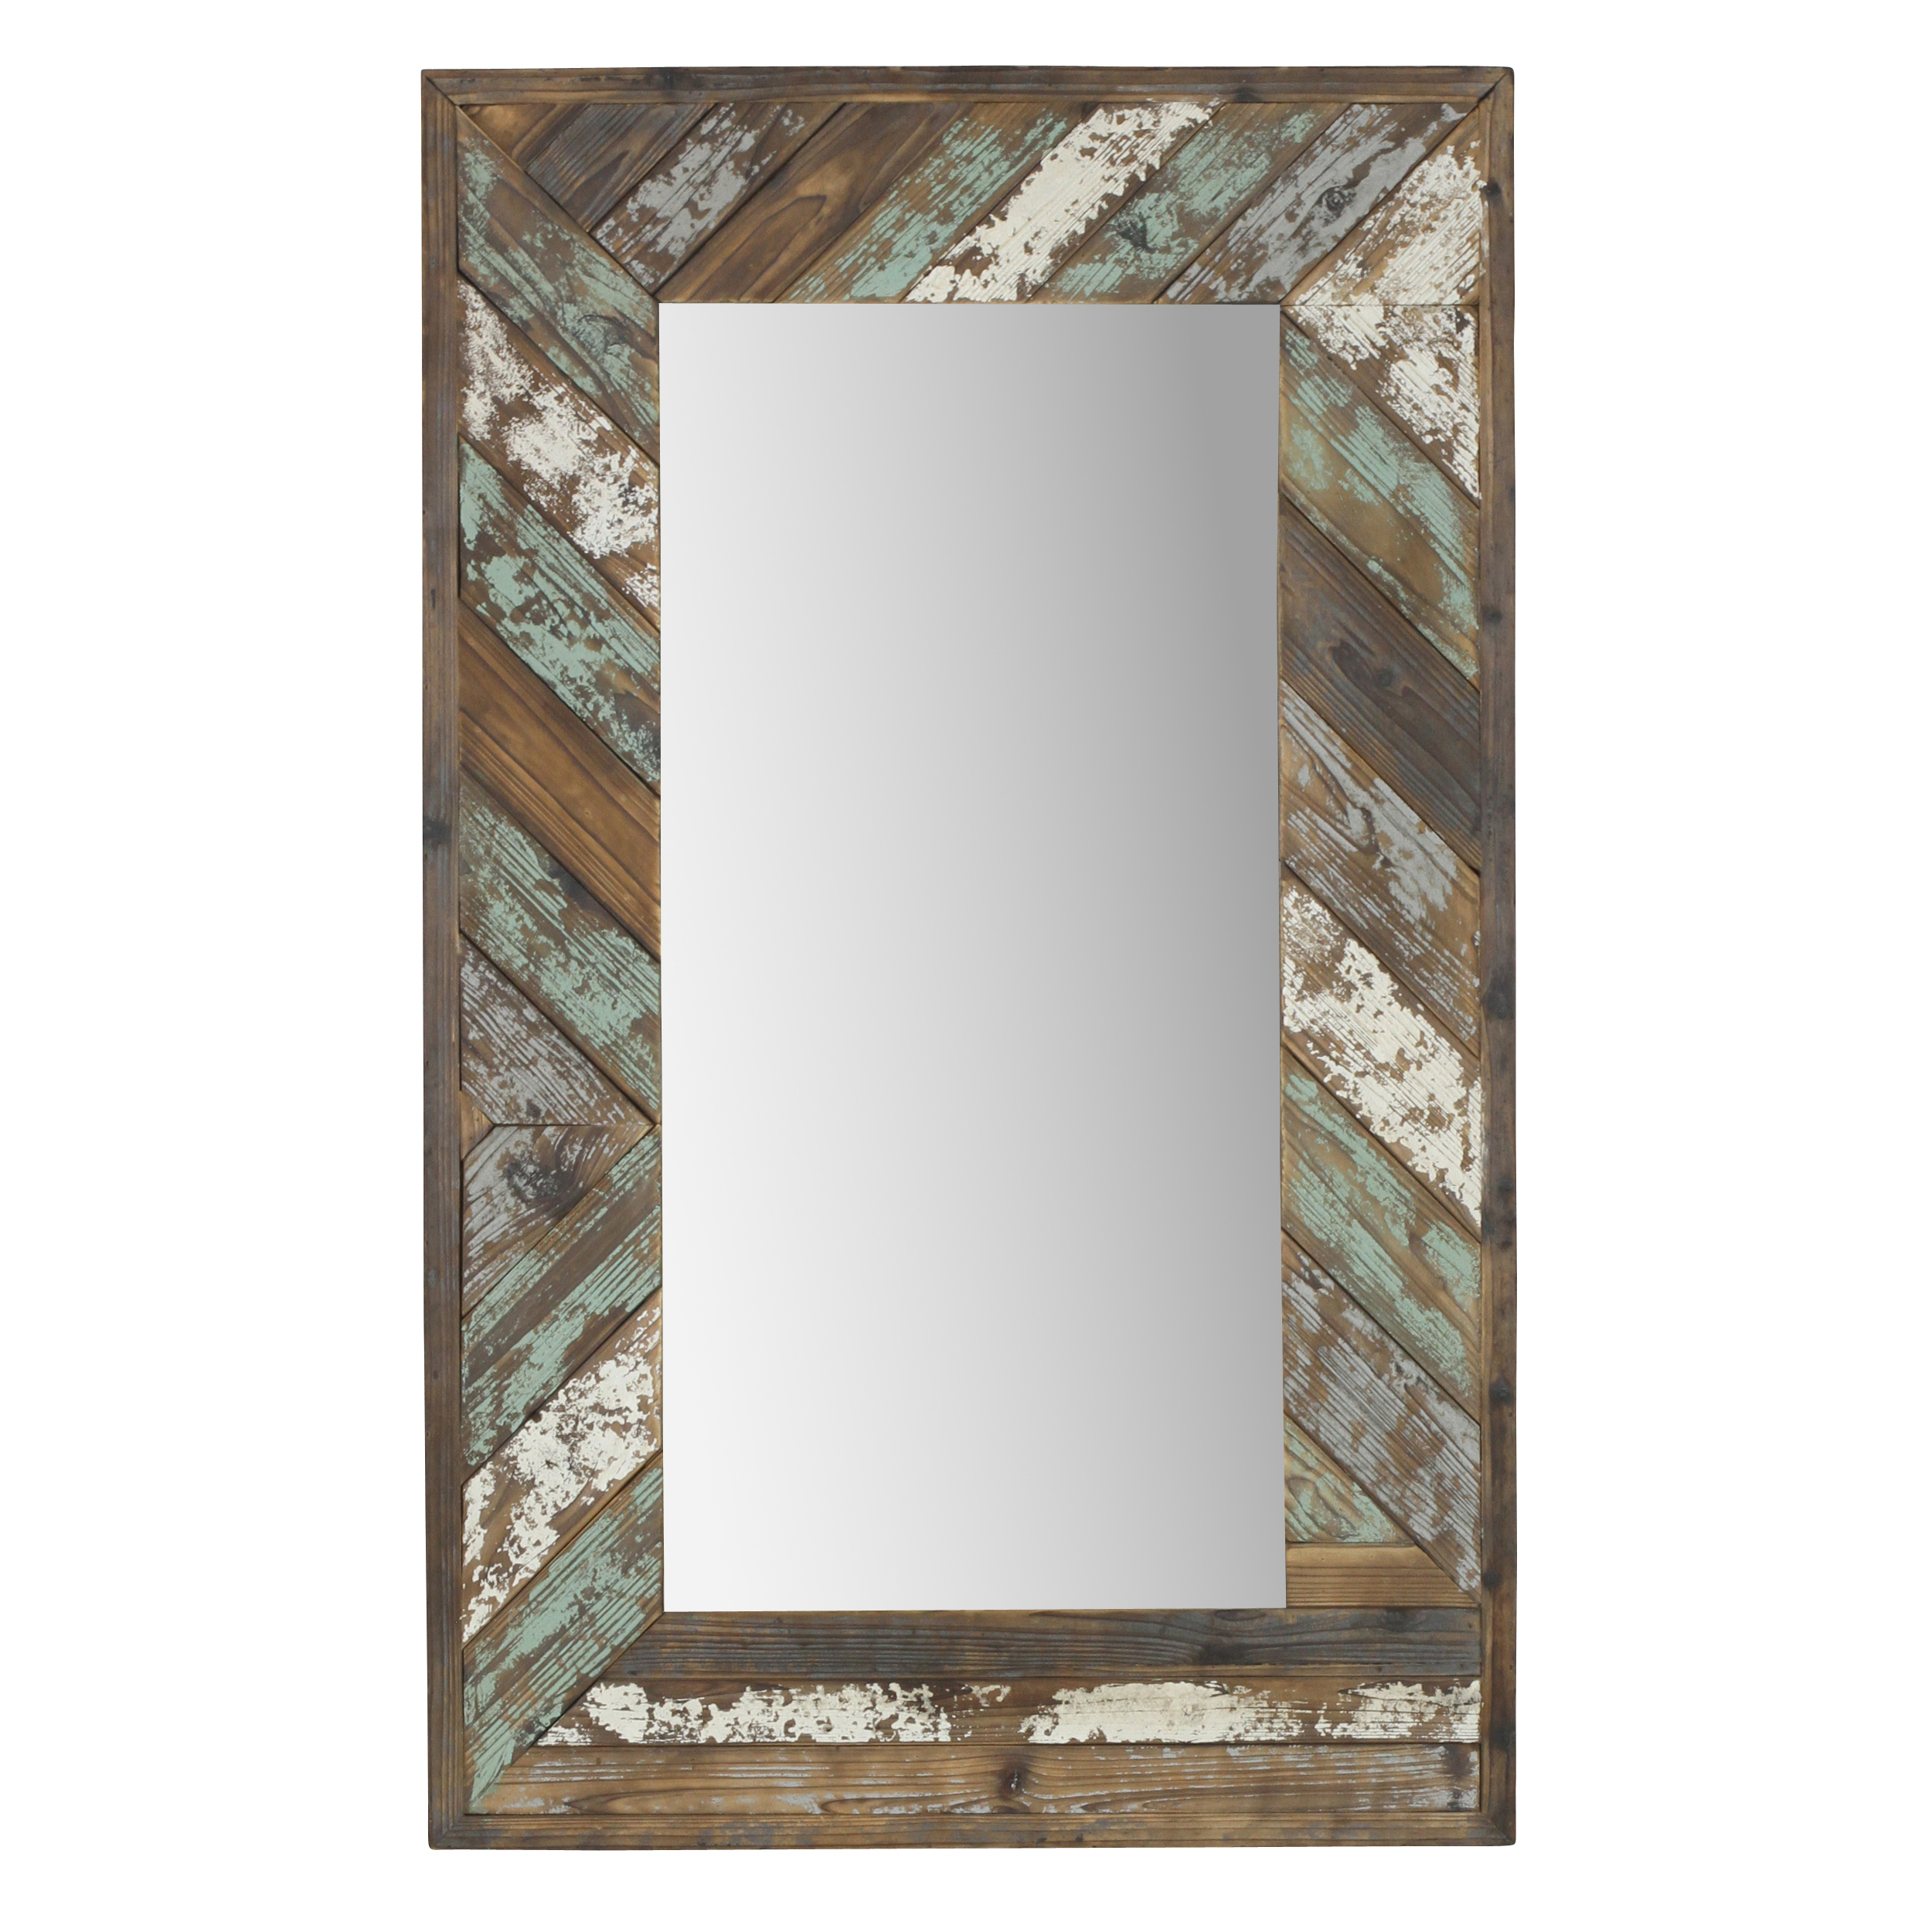 "Brogan Distressed Wood Slat Wall Mirror Multi Colored 43"" X 26""aspire Throughout 2020 Distressed Wall Mirrors (View 5 of 20)"